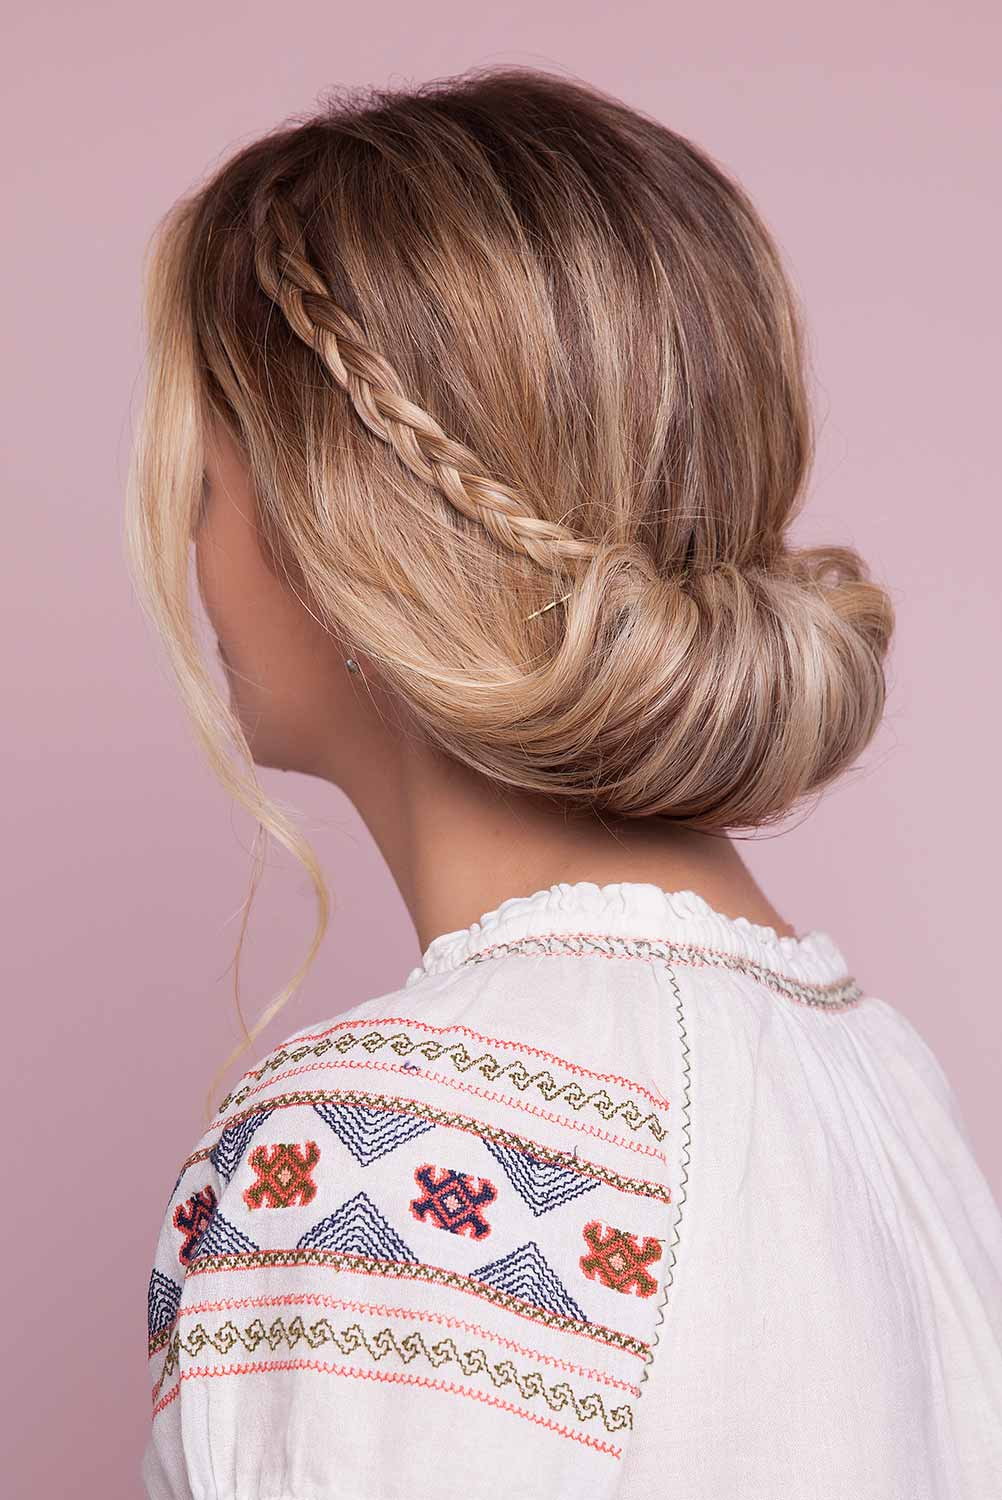 party hairstyles we love: braided chignon